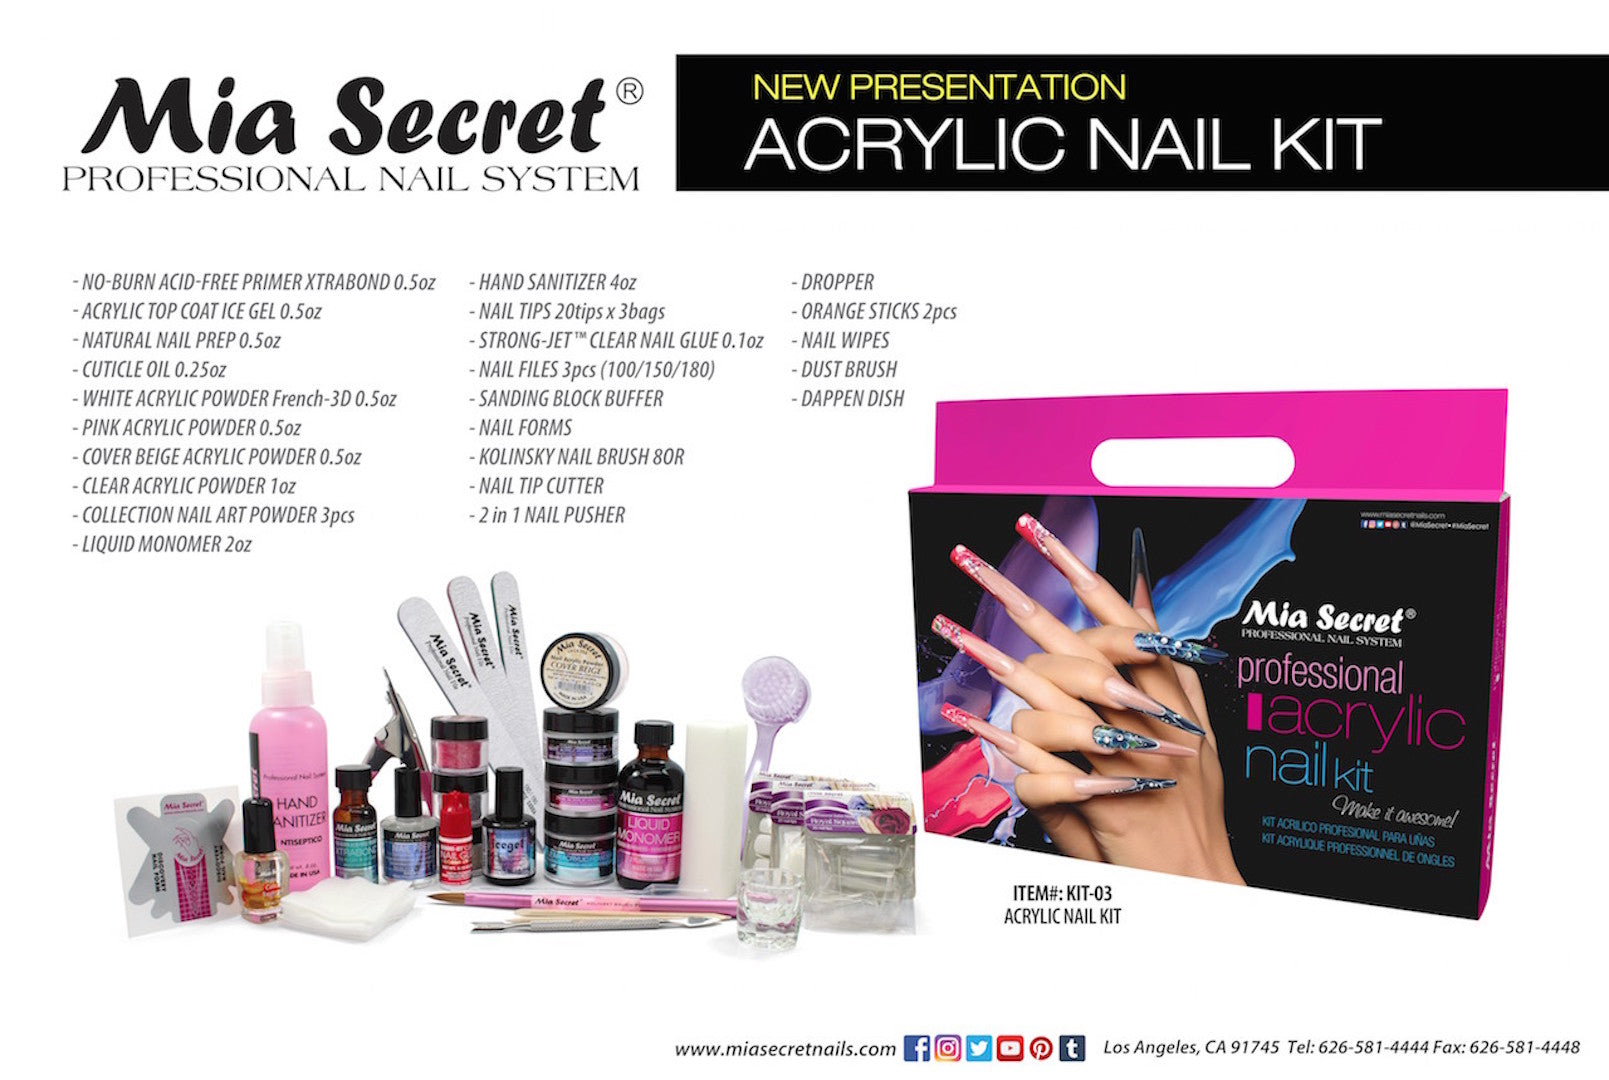 MIA SECRET PROFESSIONAL ACRYLIC NAIL KIT – TRENDZCOLORS